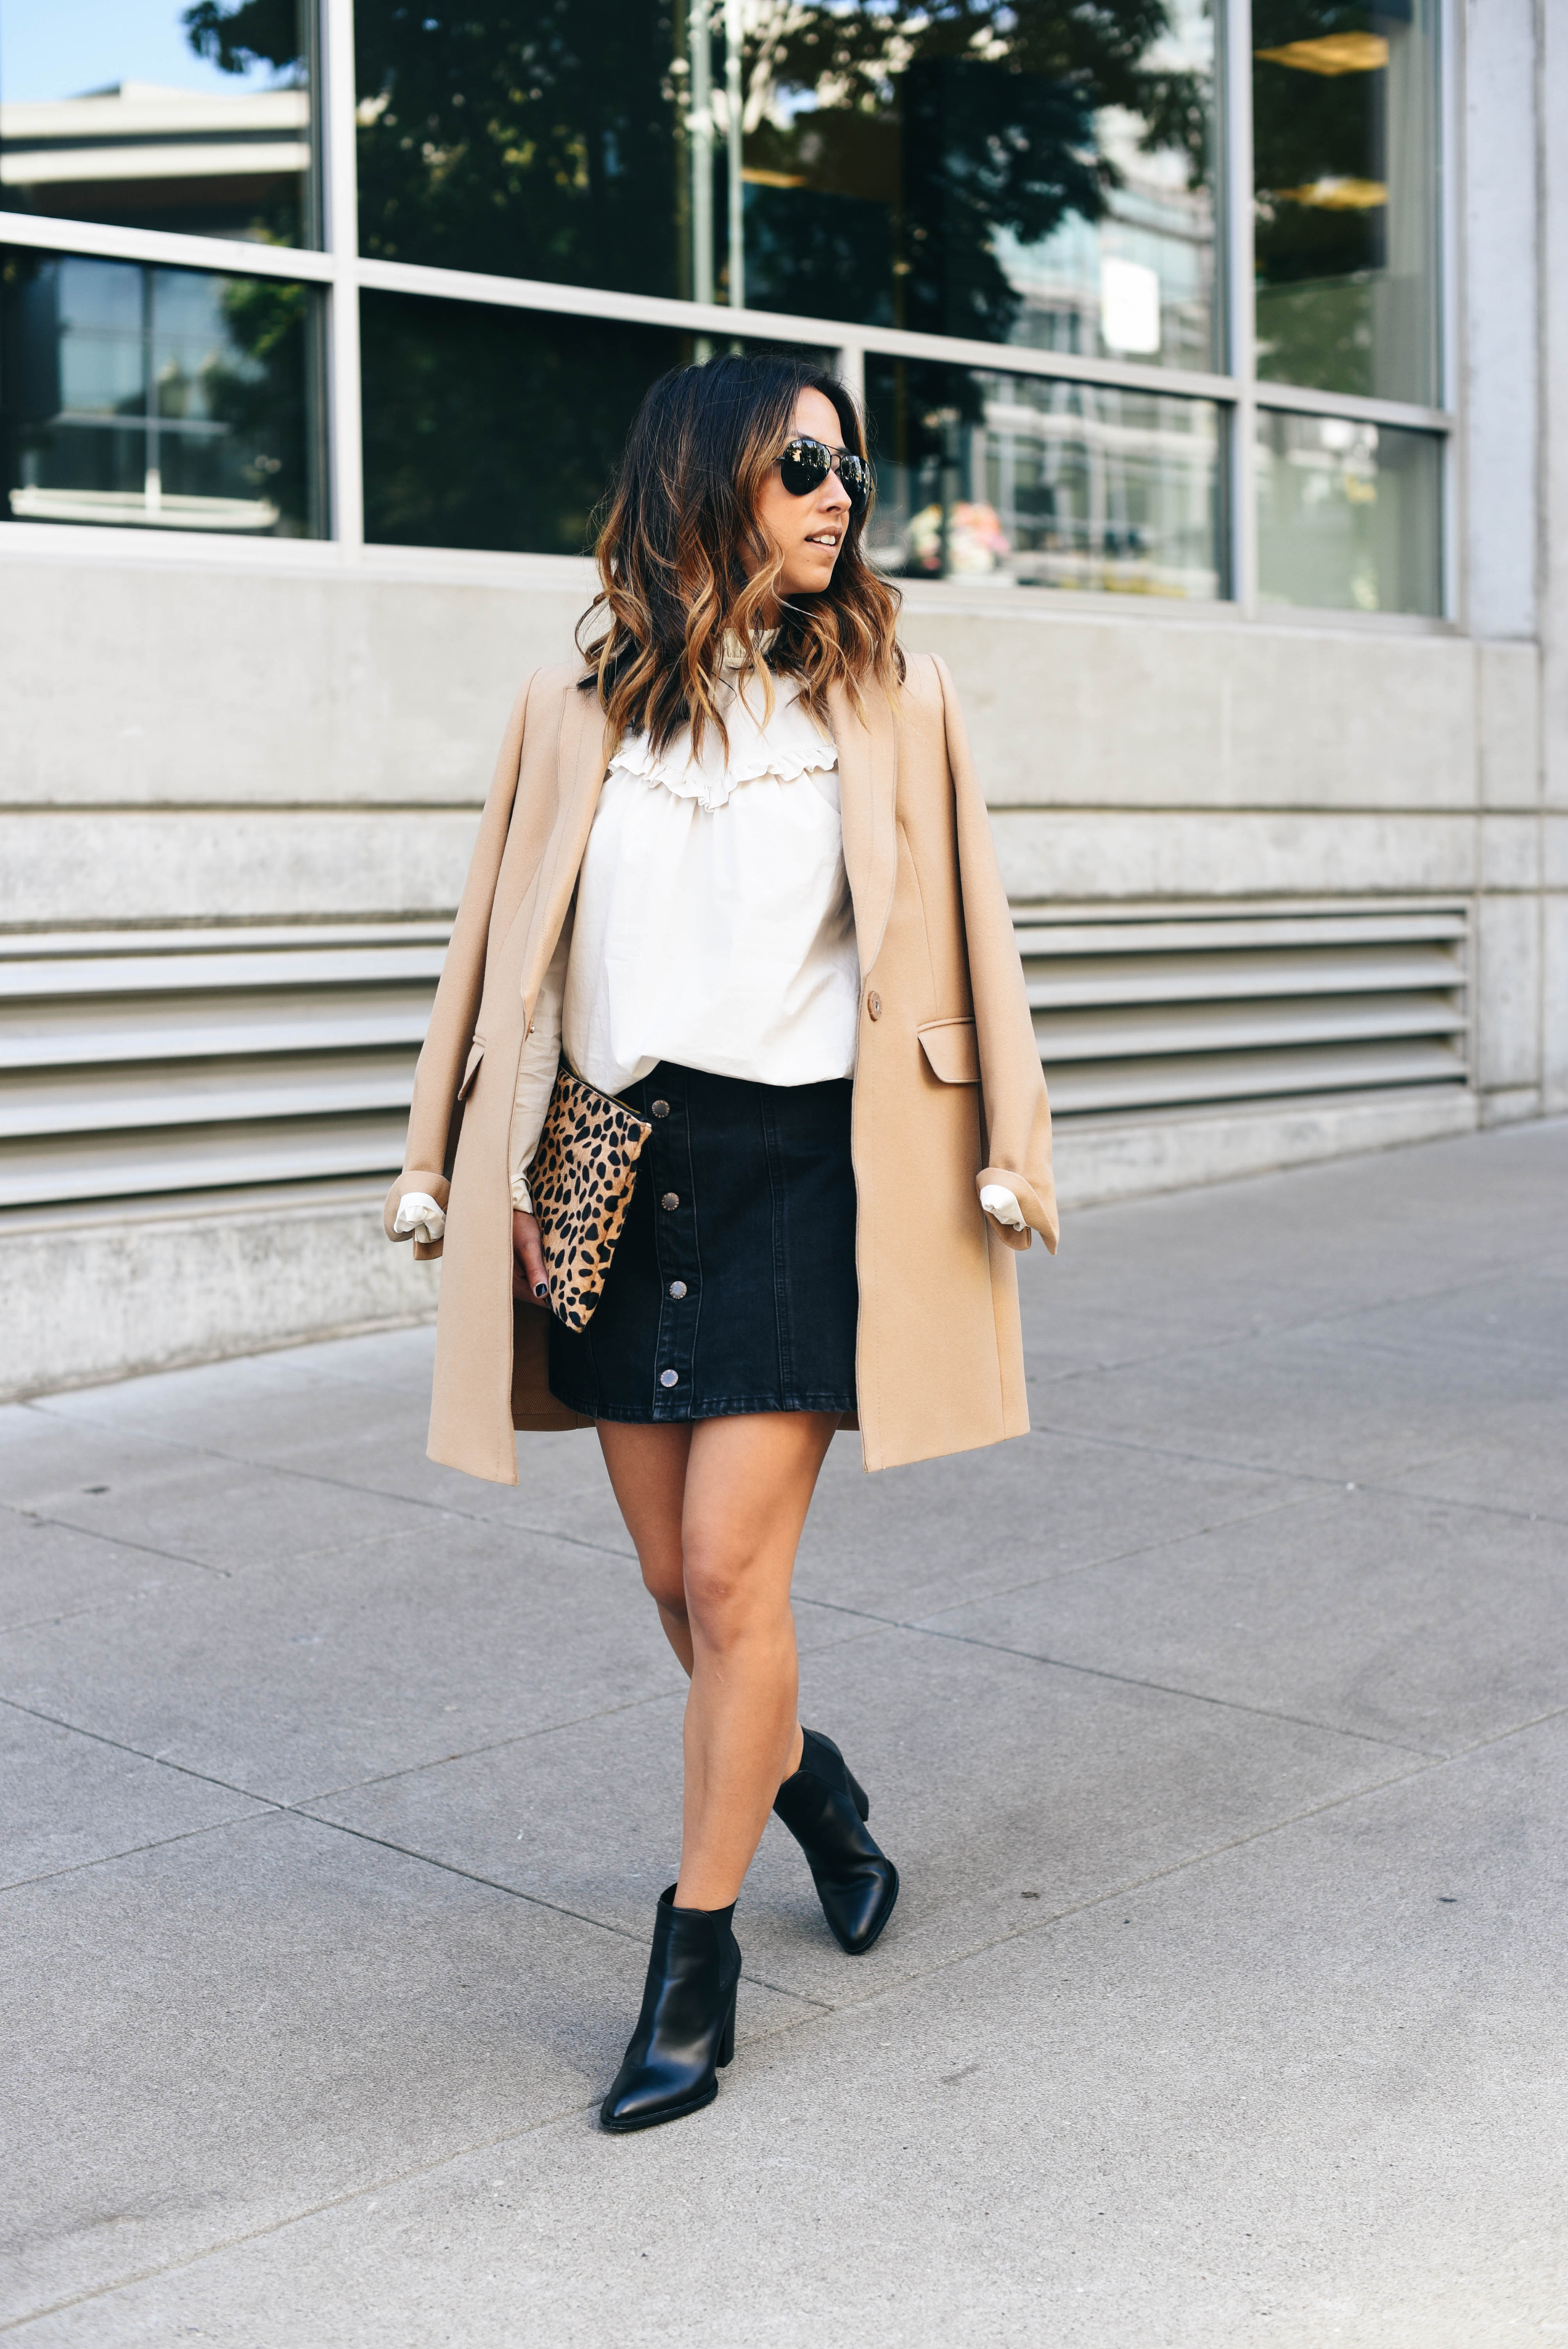 How to wear a skirt in the fall